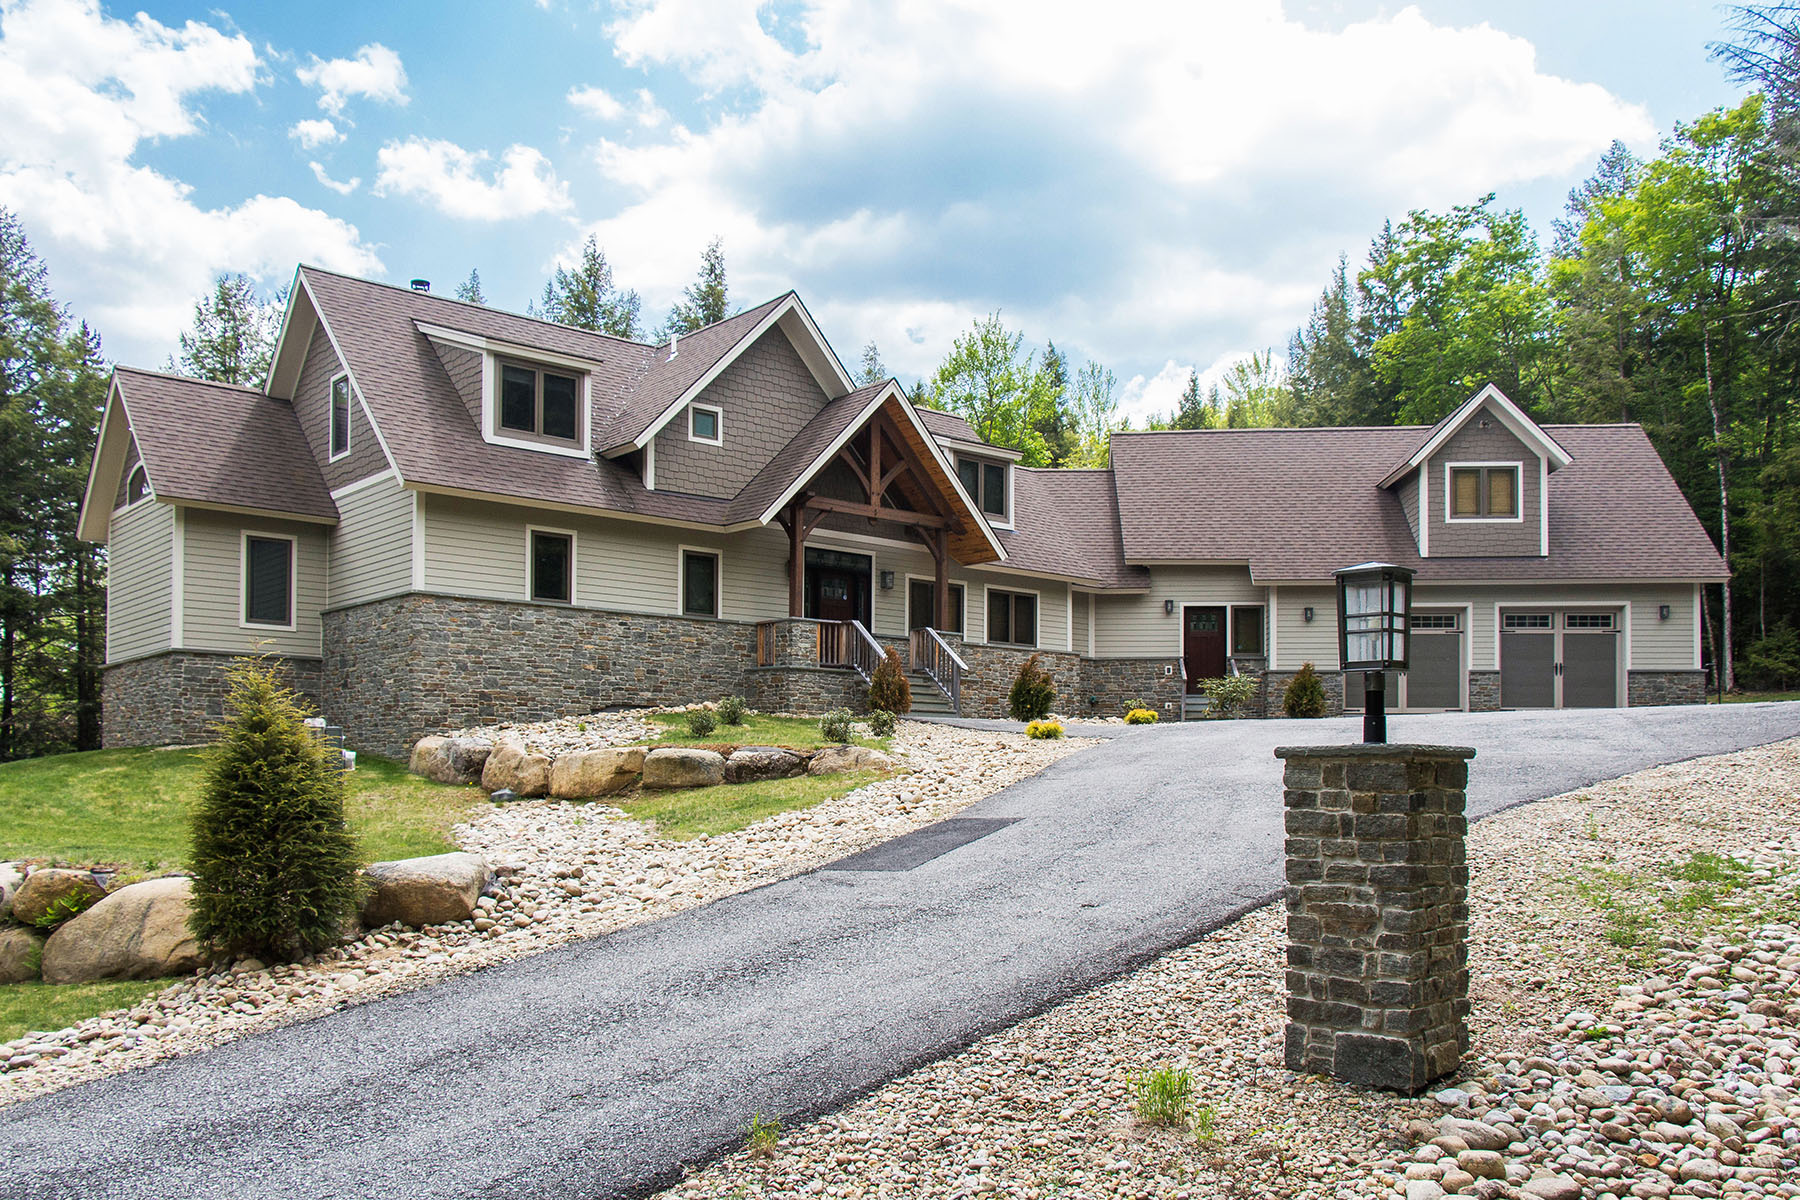 Single Family Home for Sale at Luxury Wood Pegged Timber Frame 15 Straight Brook Ln Johnsburg, 12853 United States